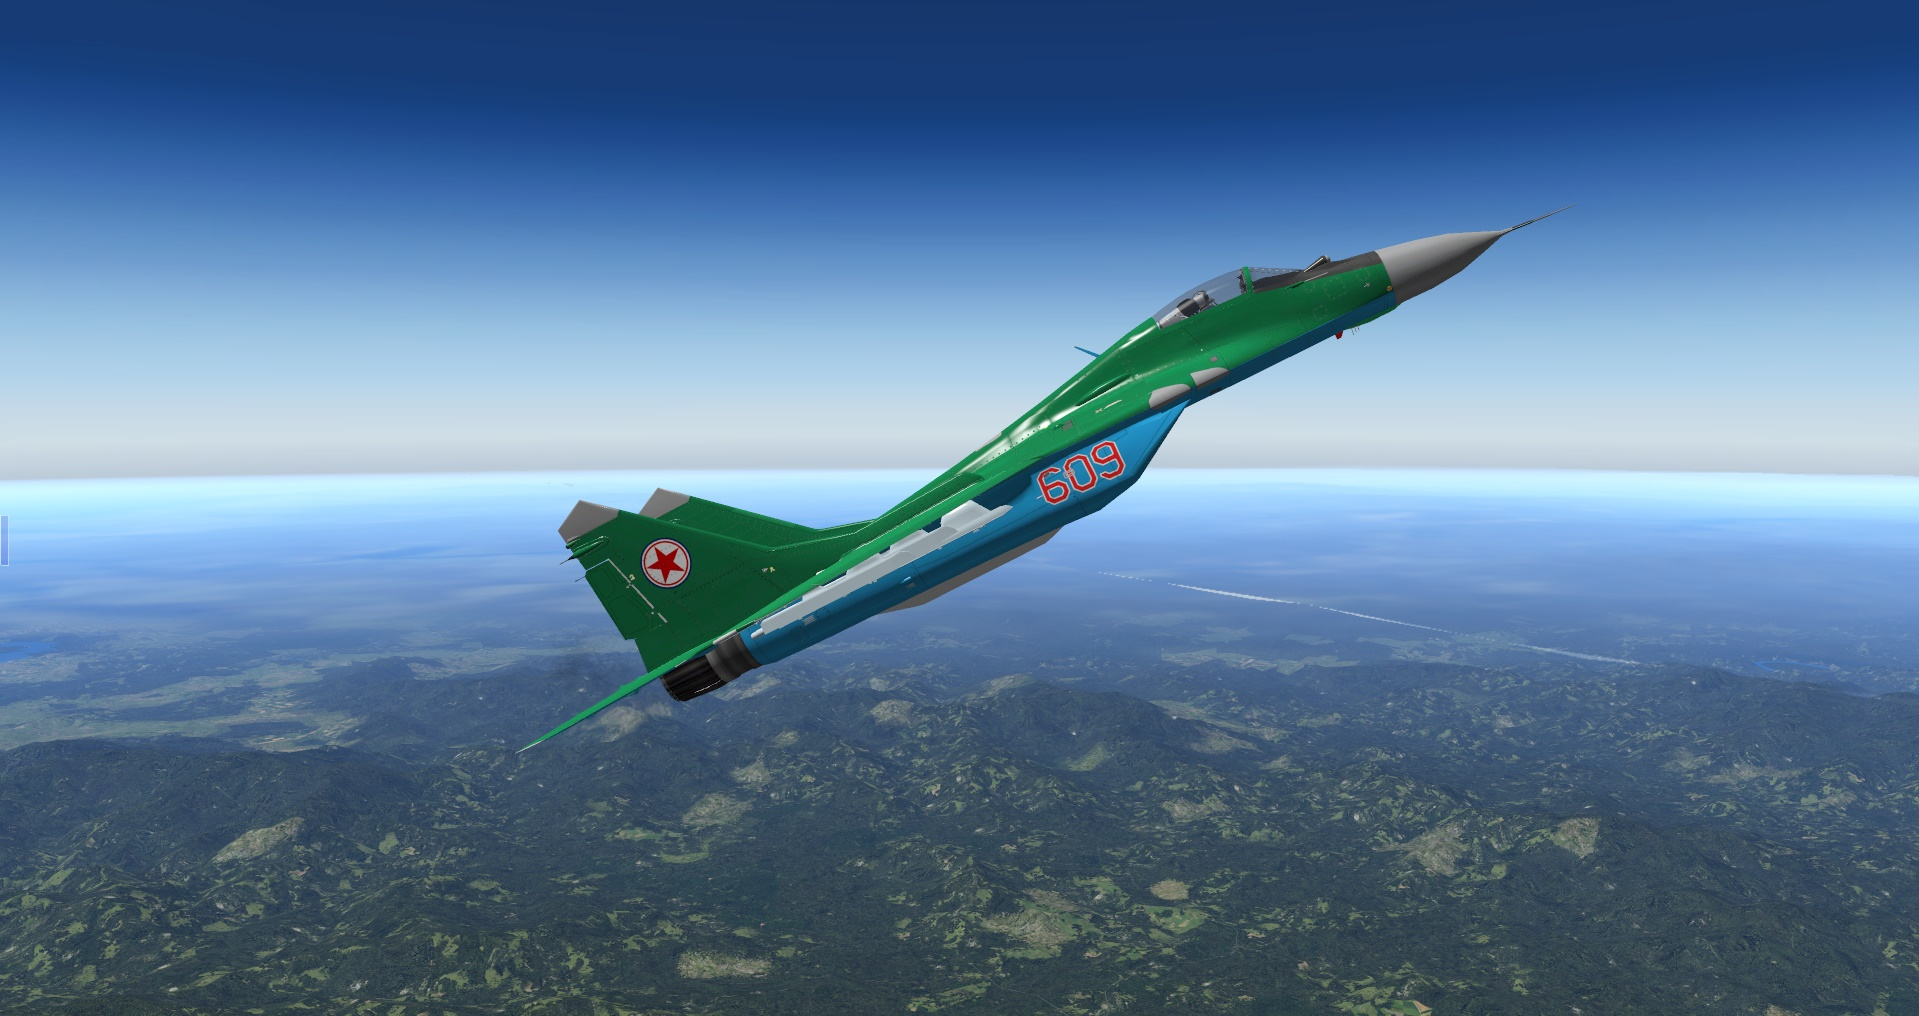 Korean People's Air Force for colimata MiG-29 - Others - AEROSOFT